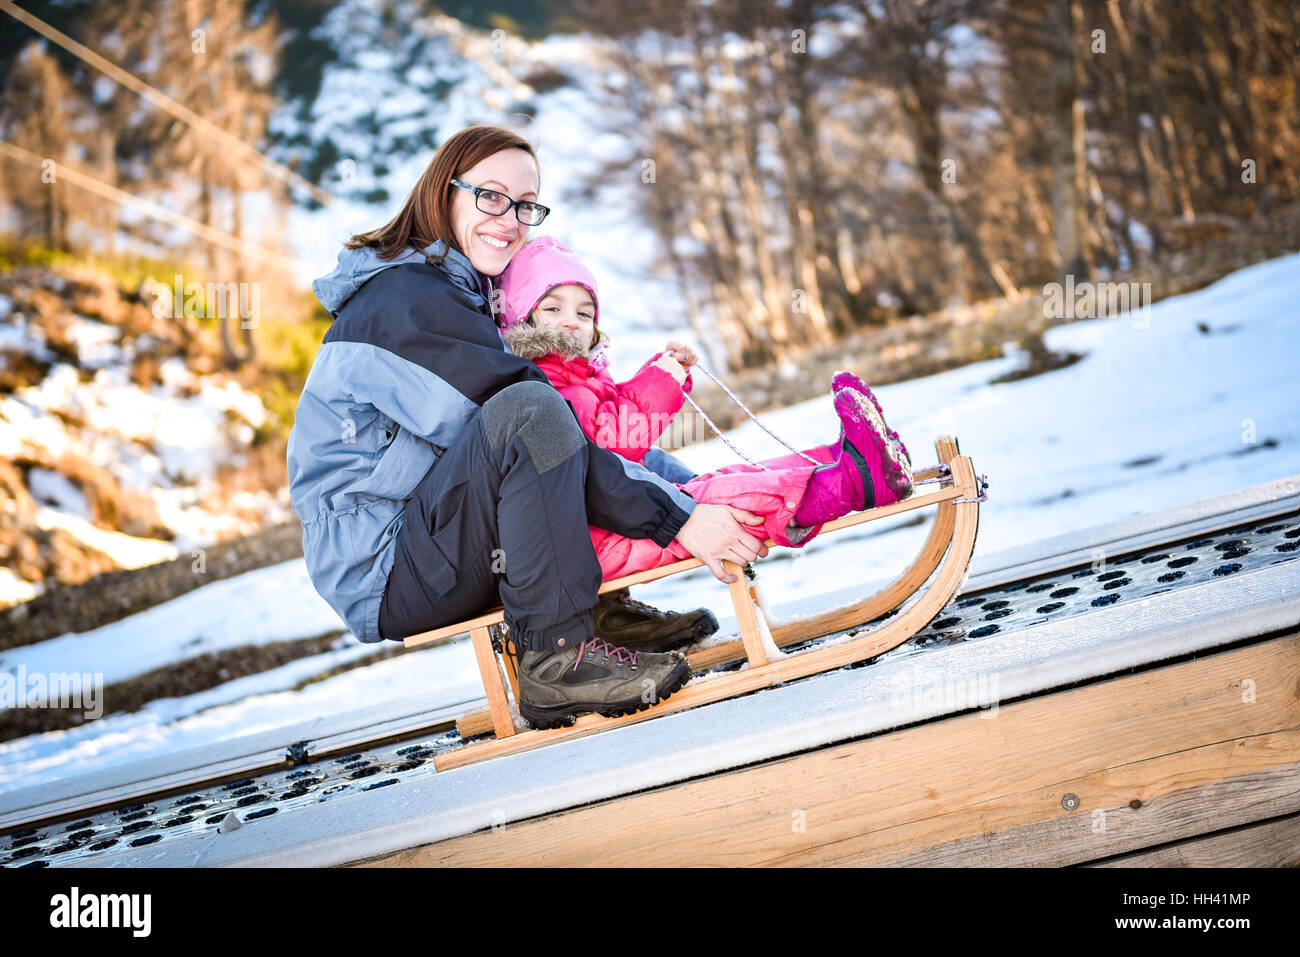 Mother and little child on a ski conveyor on sledge in ski resort school for skiing. - Stock Image